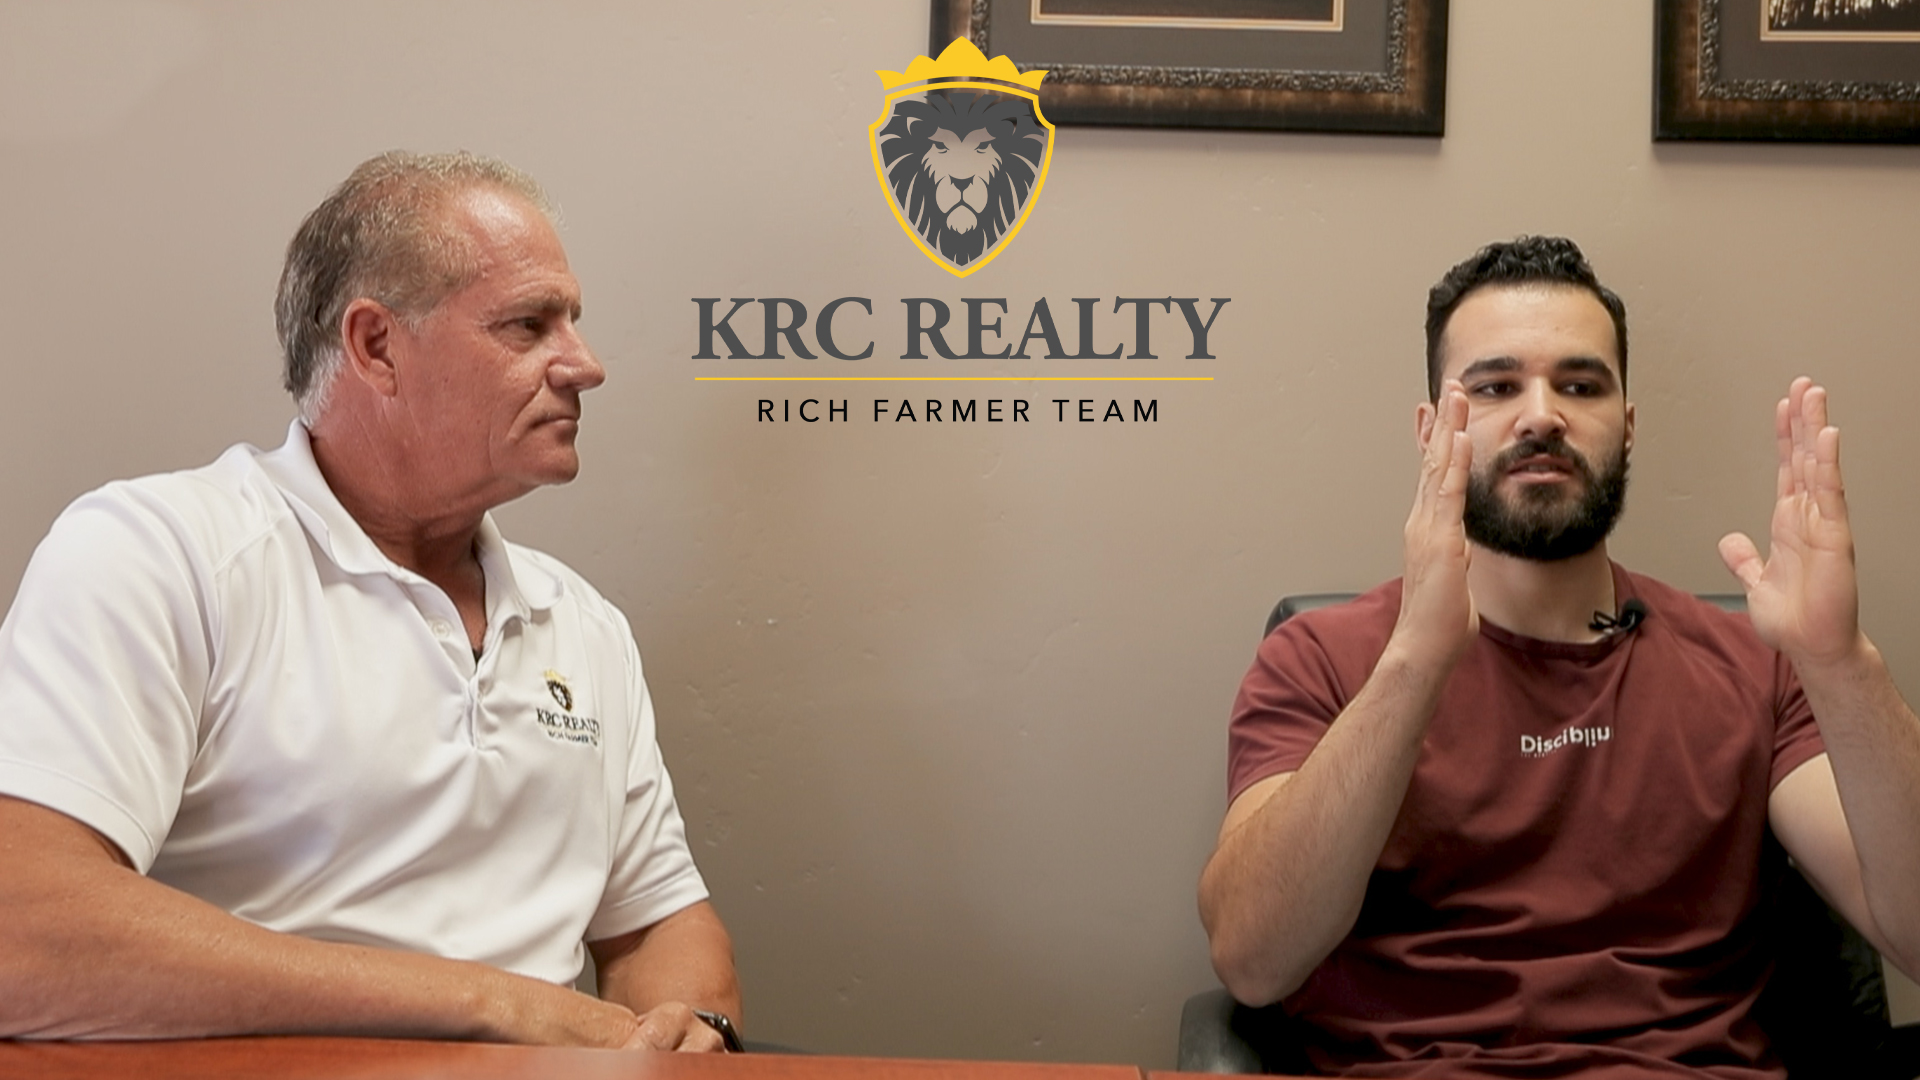 KRC REALTY | INSIGHTFUL REAL ESTATE PHOTOGRAPHY TIPS |